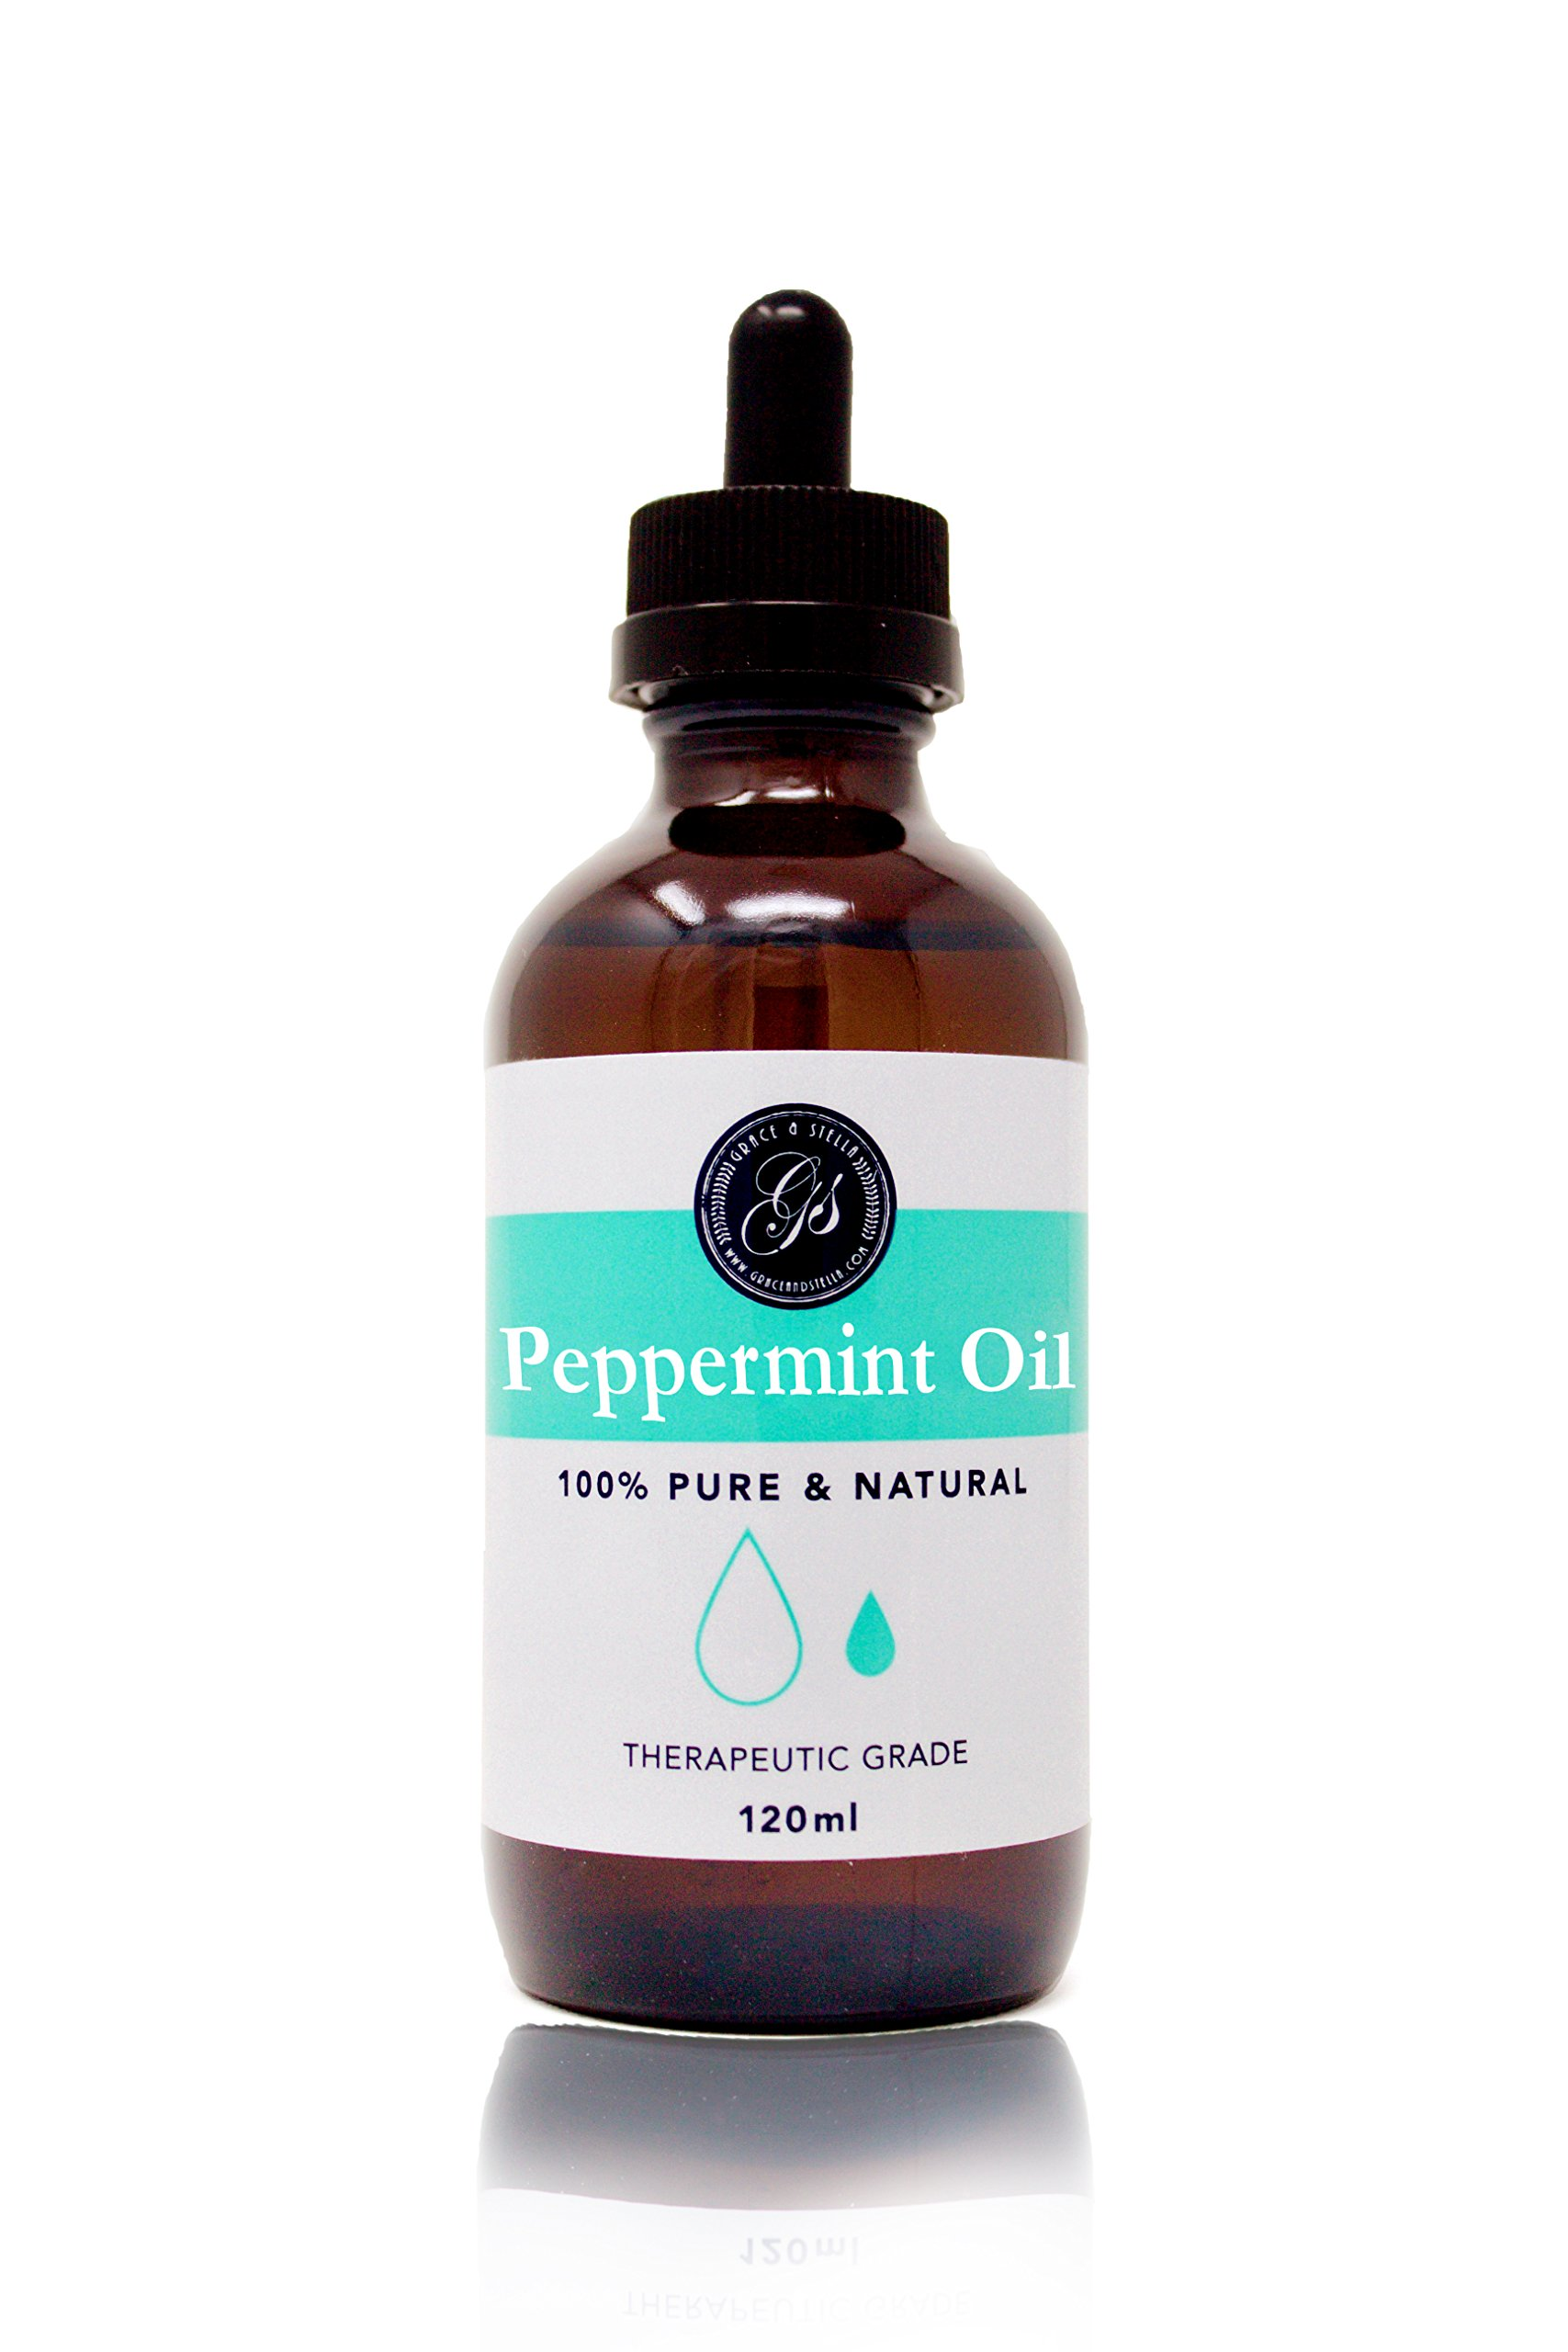 100% Pure & Natural Peppermint Oil - LARGE 4oz (120ml) - (Mentha Peperita) - Therapeutic Grade - Great for Massage Therapy, Bath Soak, Aromatherapy, Skincare, Home Fragrance by Grace & Stella Co. (Image #1)